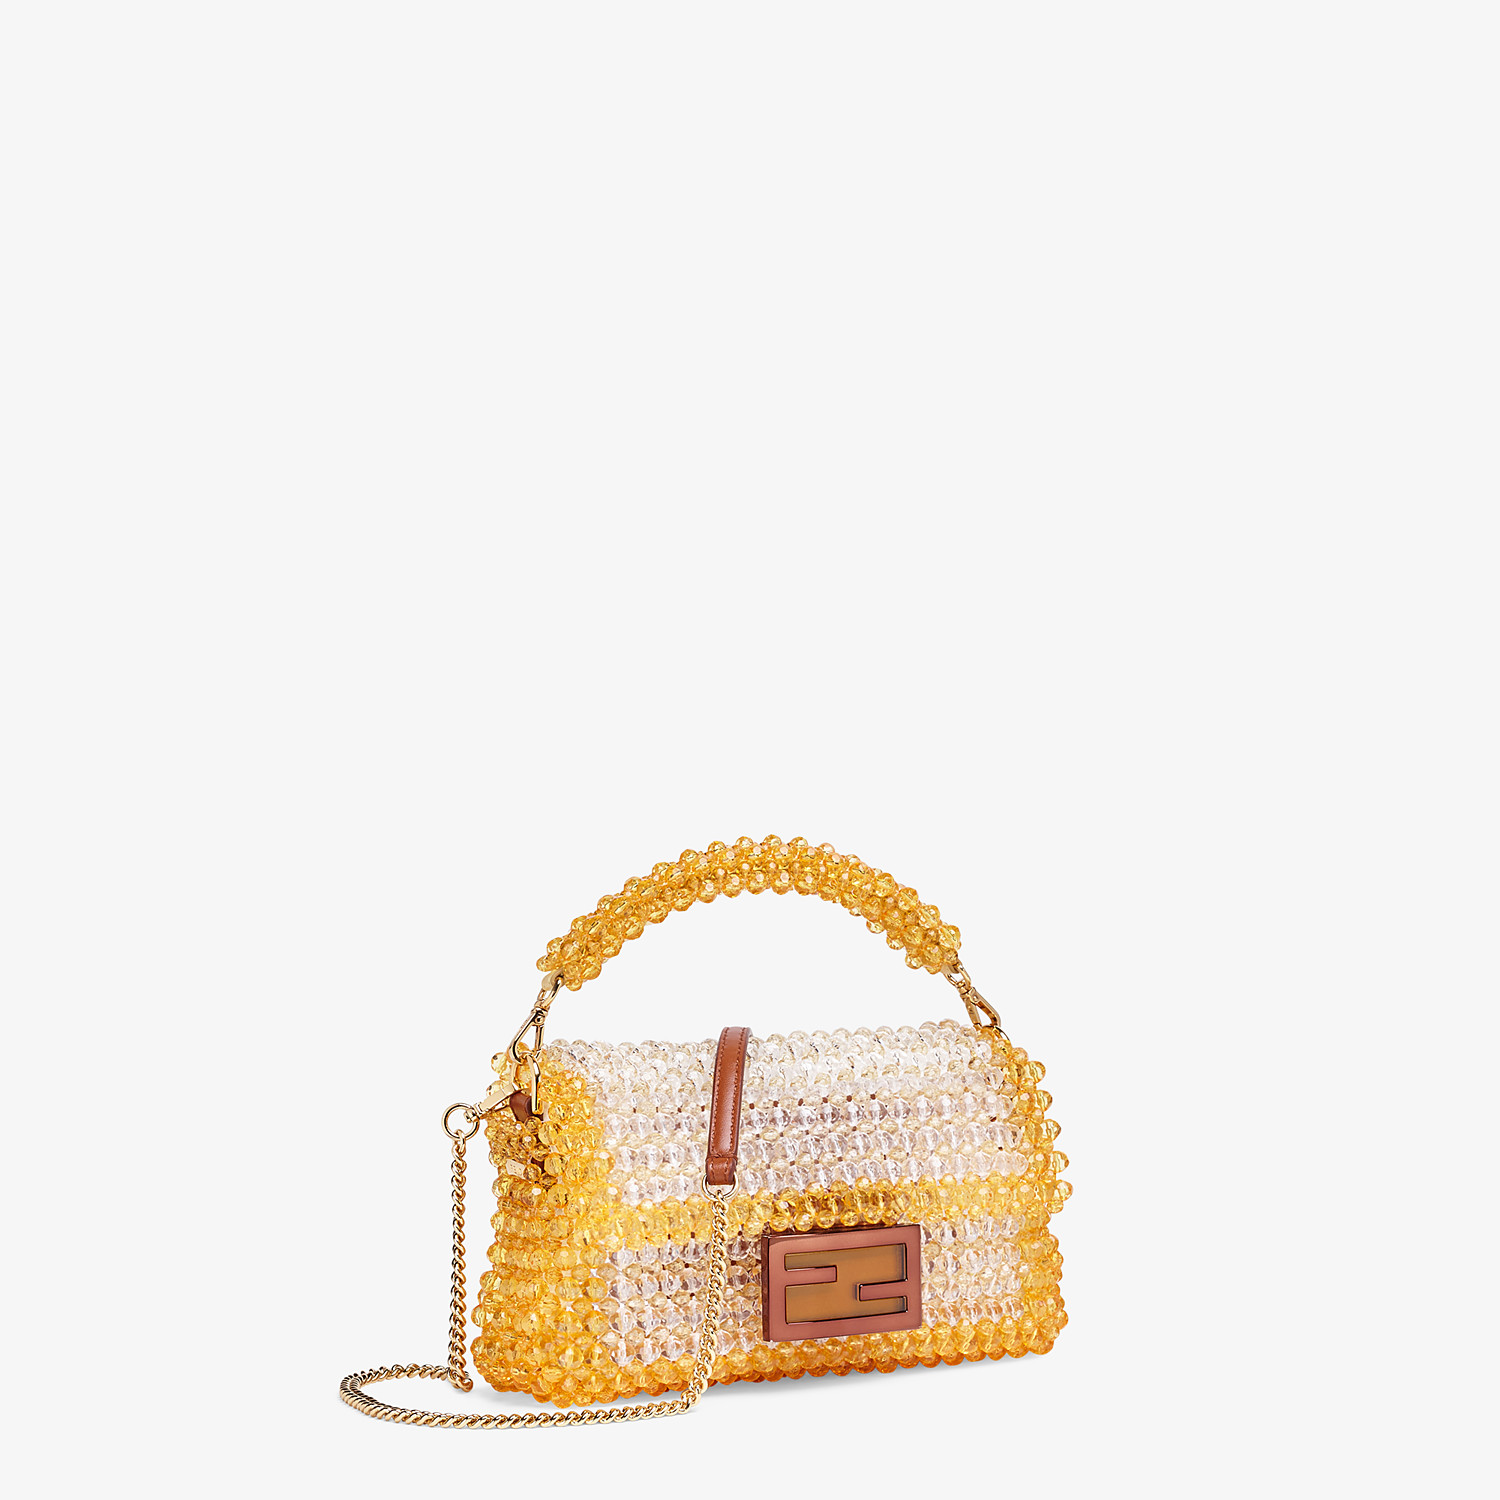 FENDI BAGUETTE - Bag with yellow beads - view 2 detail